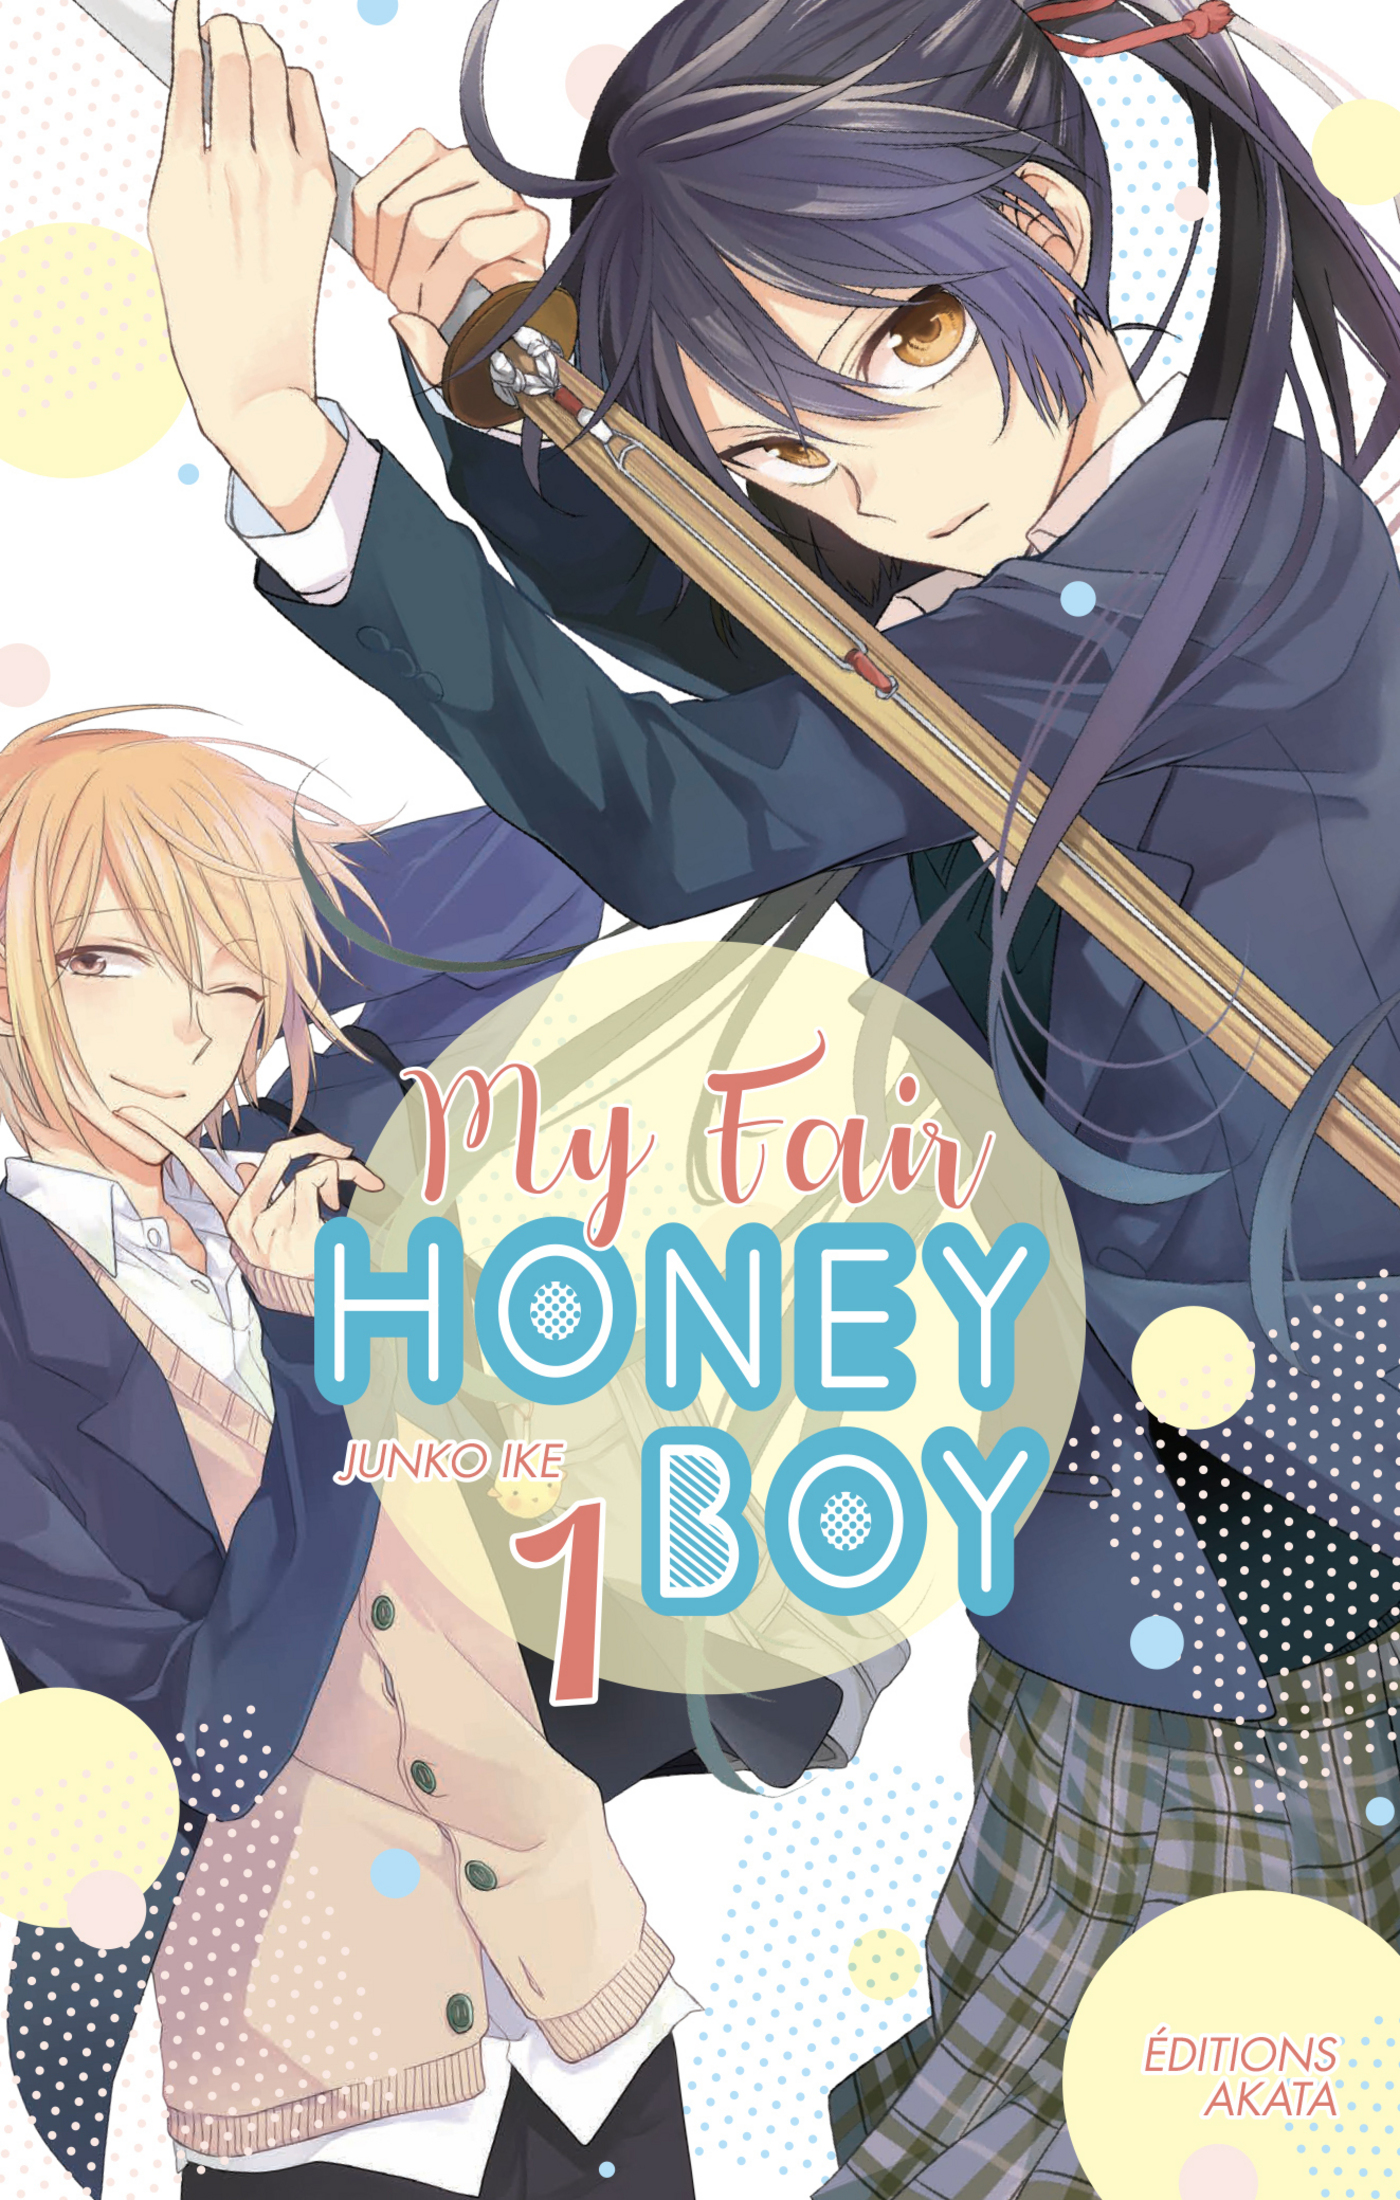 My fair honey boy 1